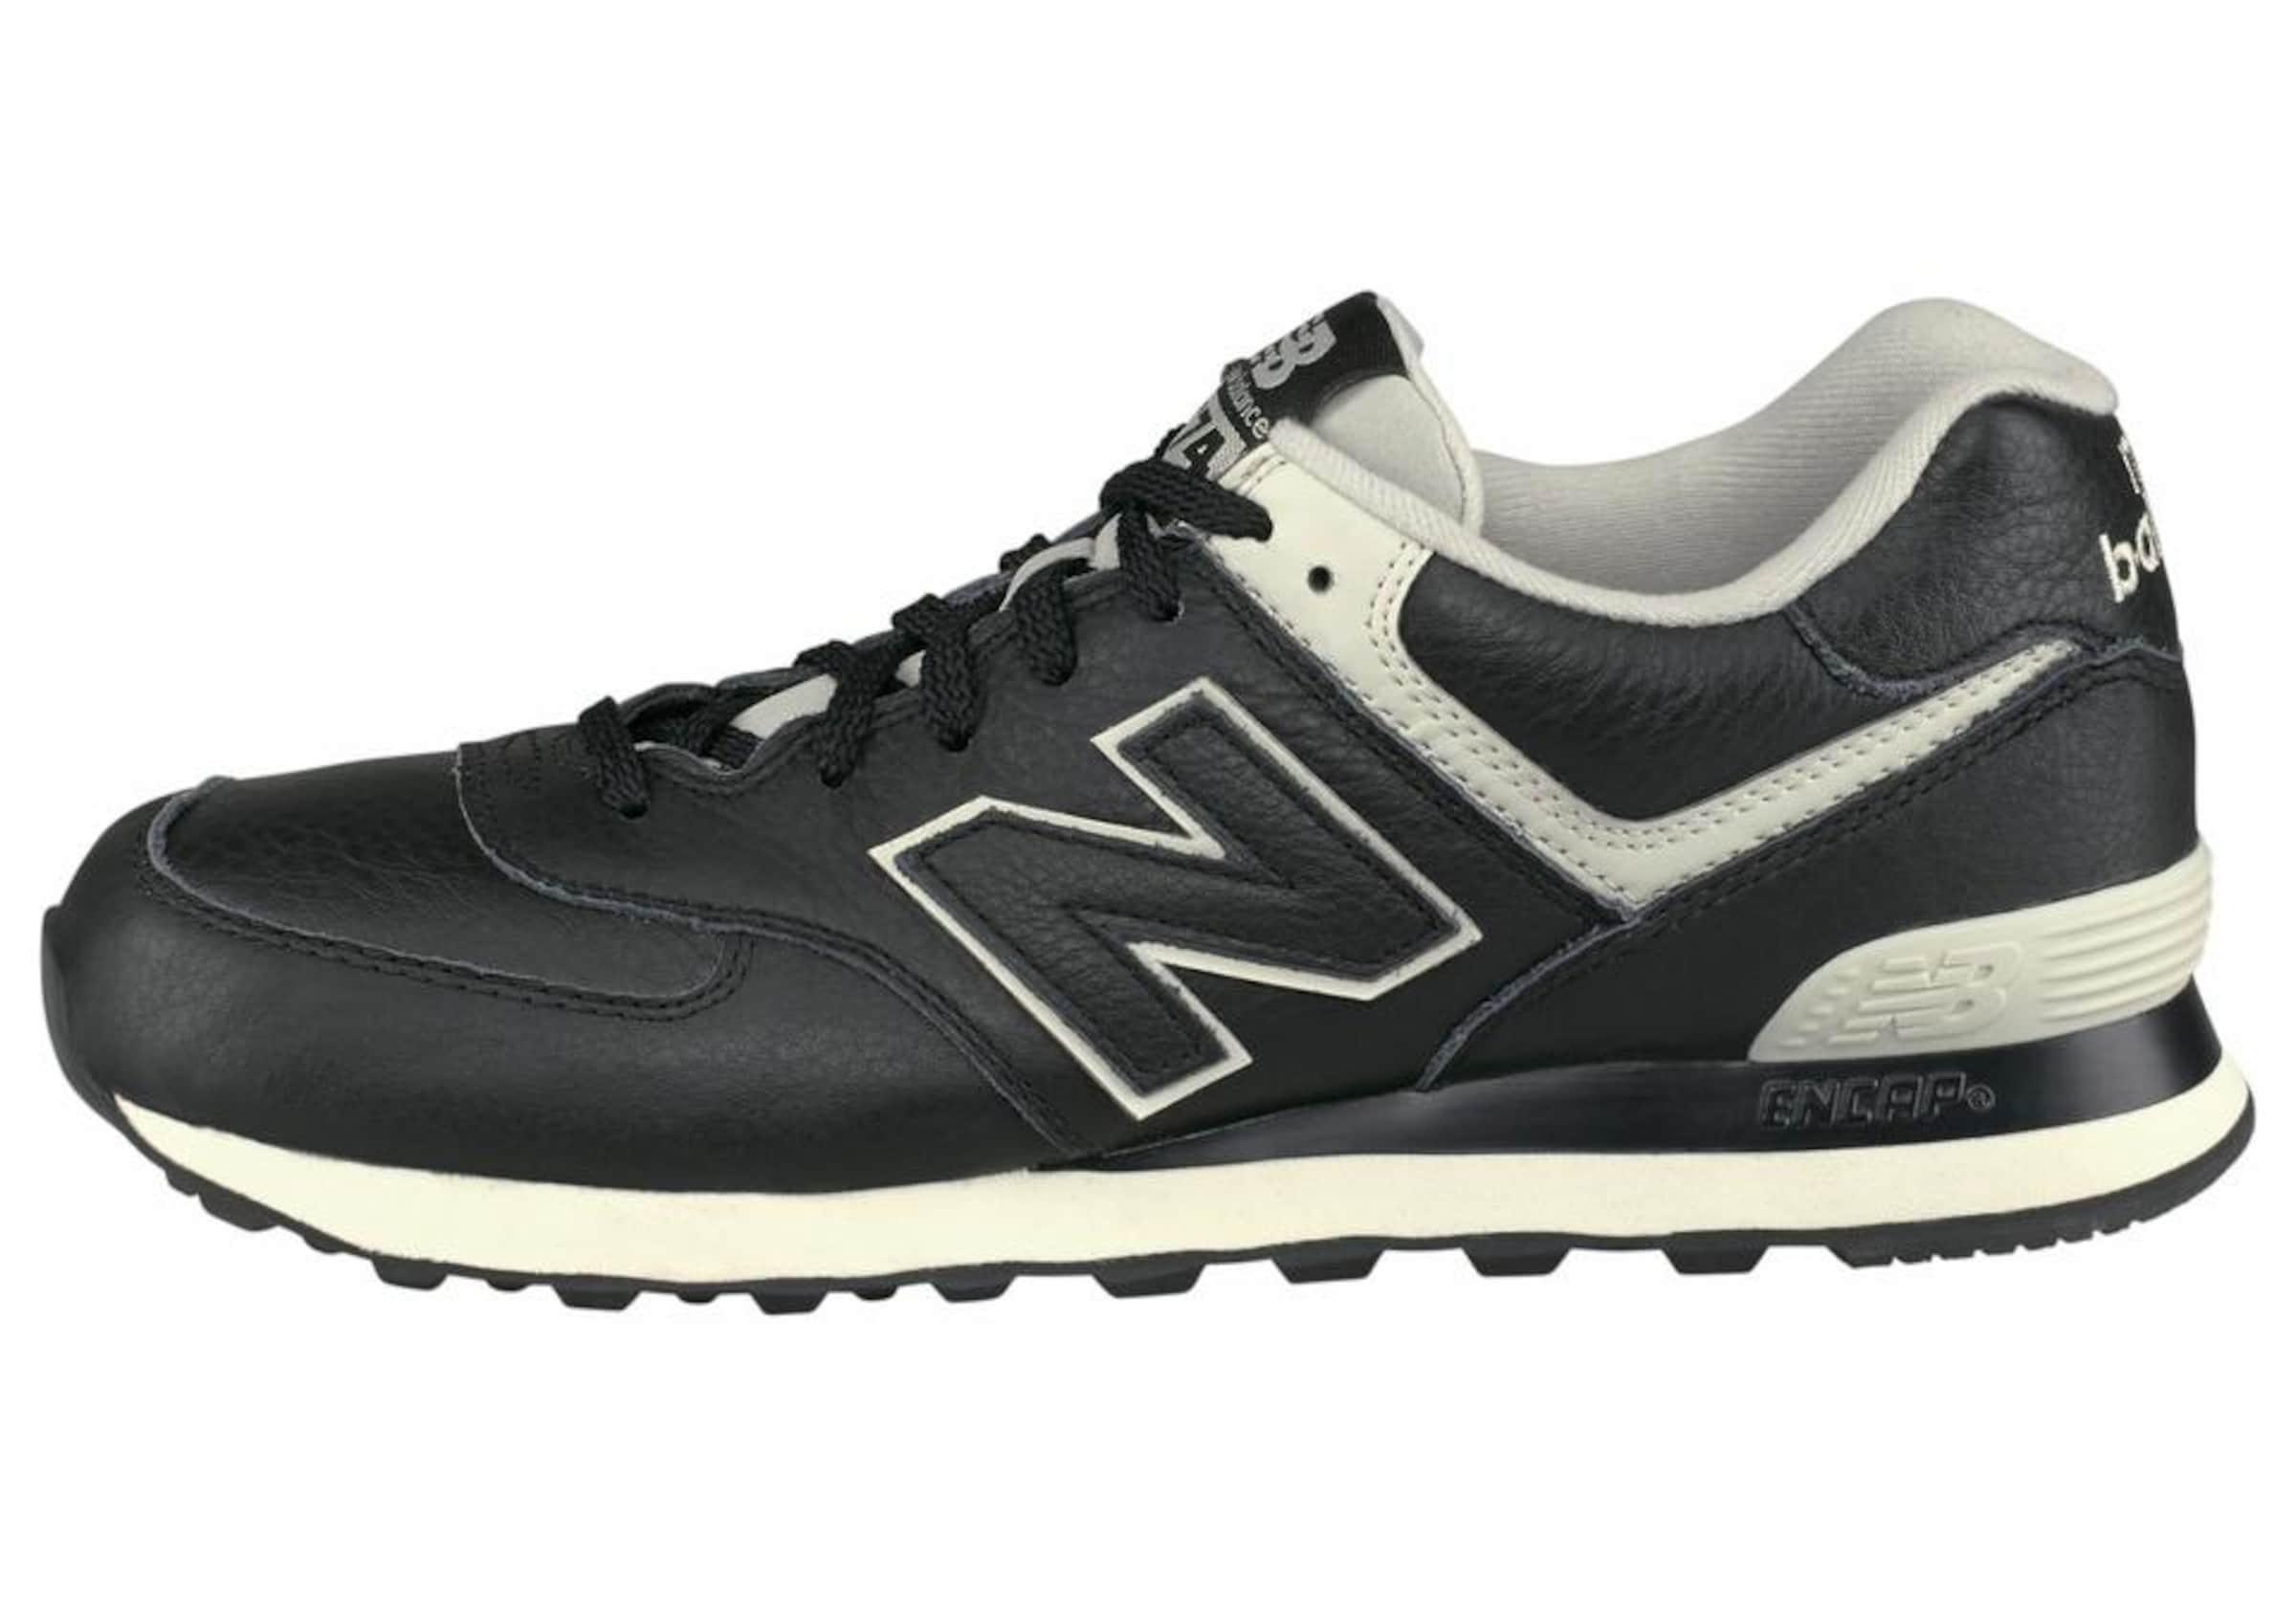 new 'ML574' Sneaker new balance balance qxqvZF6